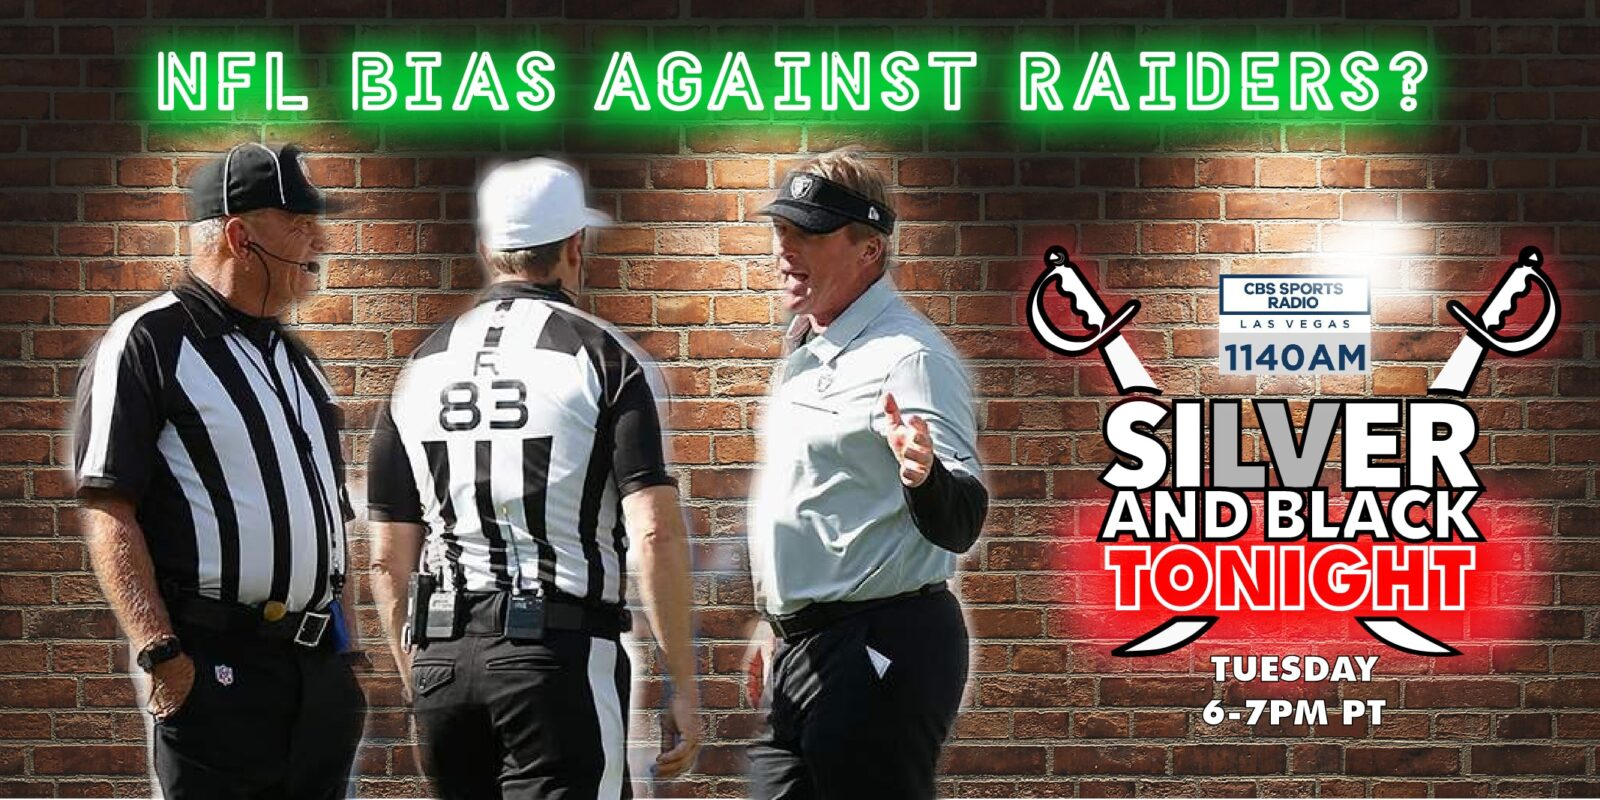 raiders nfl officials bias ethical skeptic